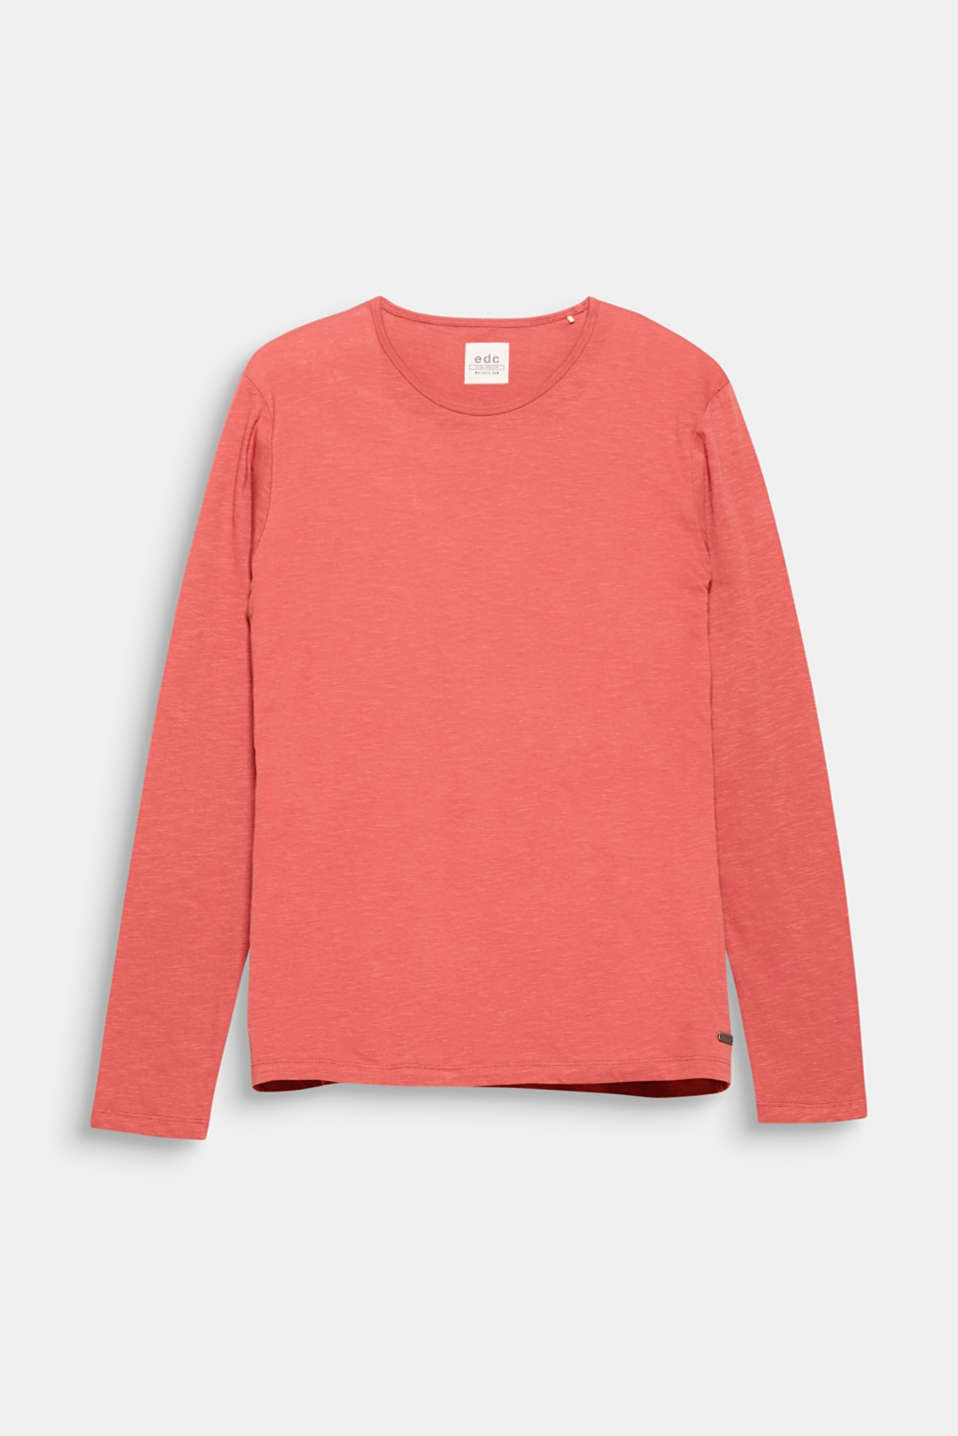 A fashion basic begging for wardrobe space: the textured slub jersey fabric makes this long sleeve top charmingly casual.